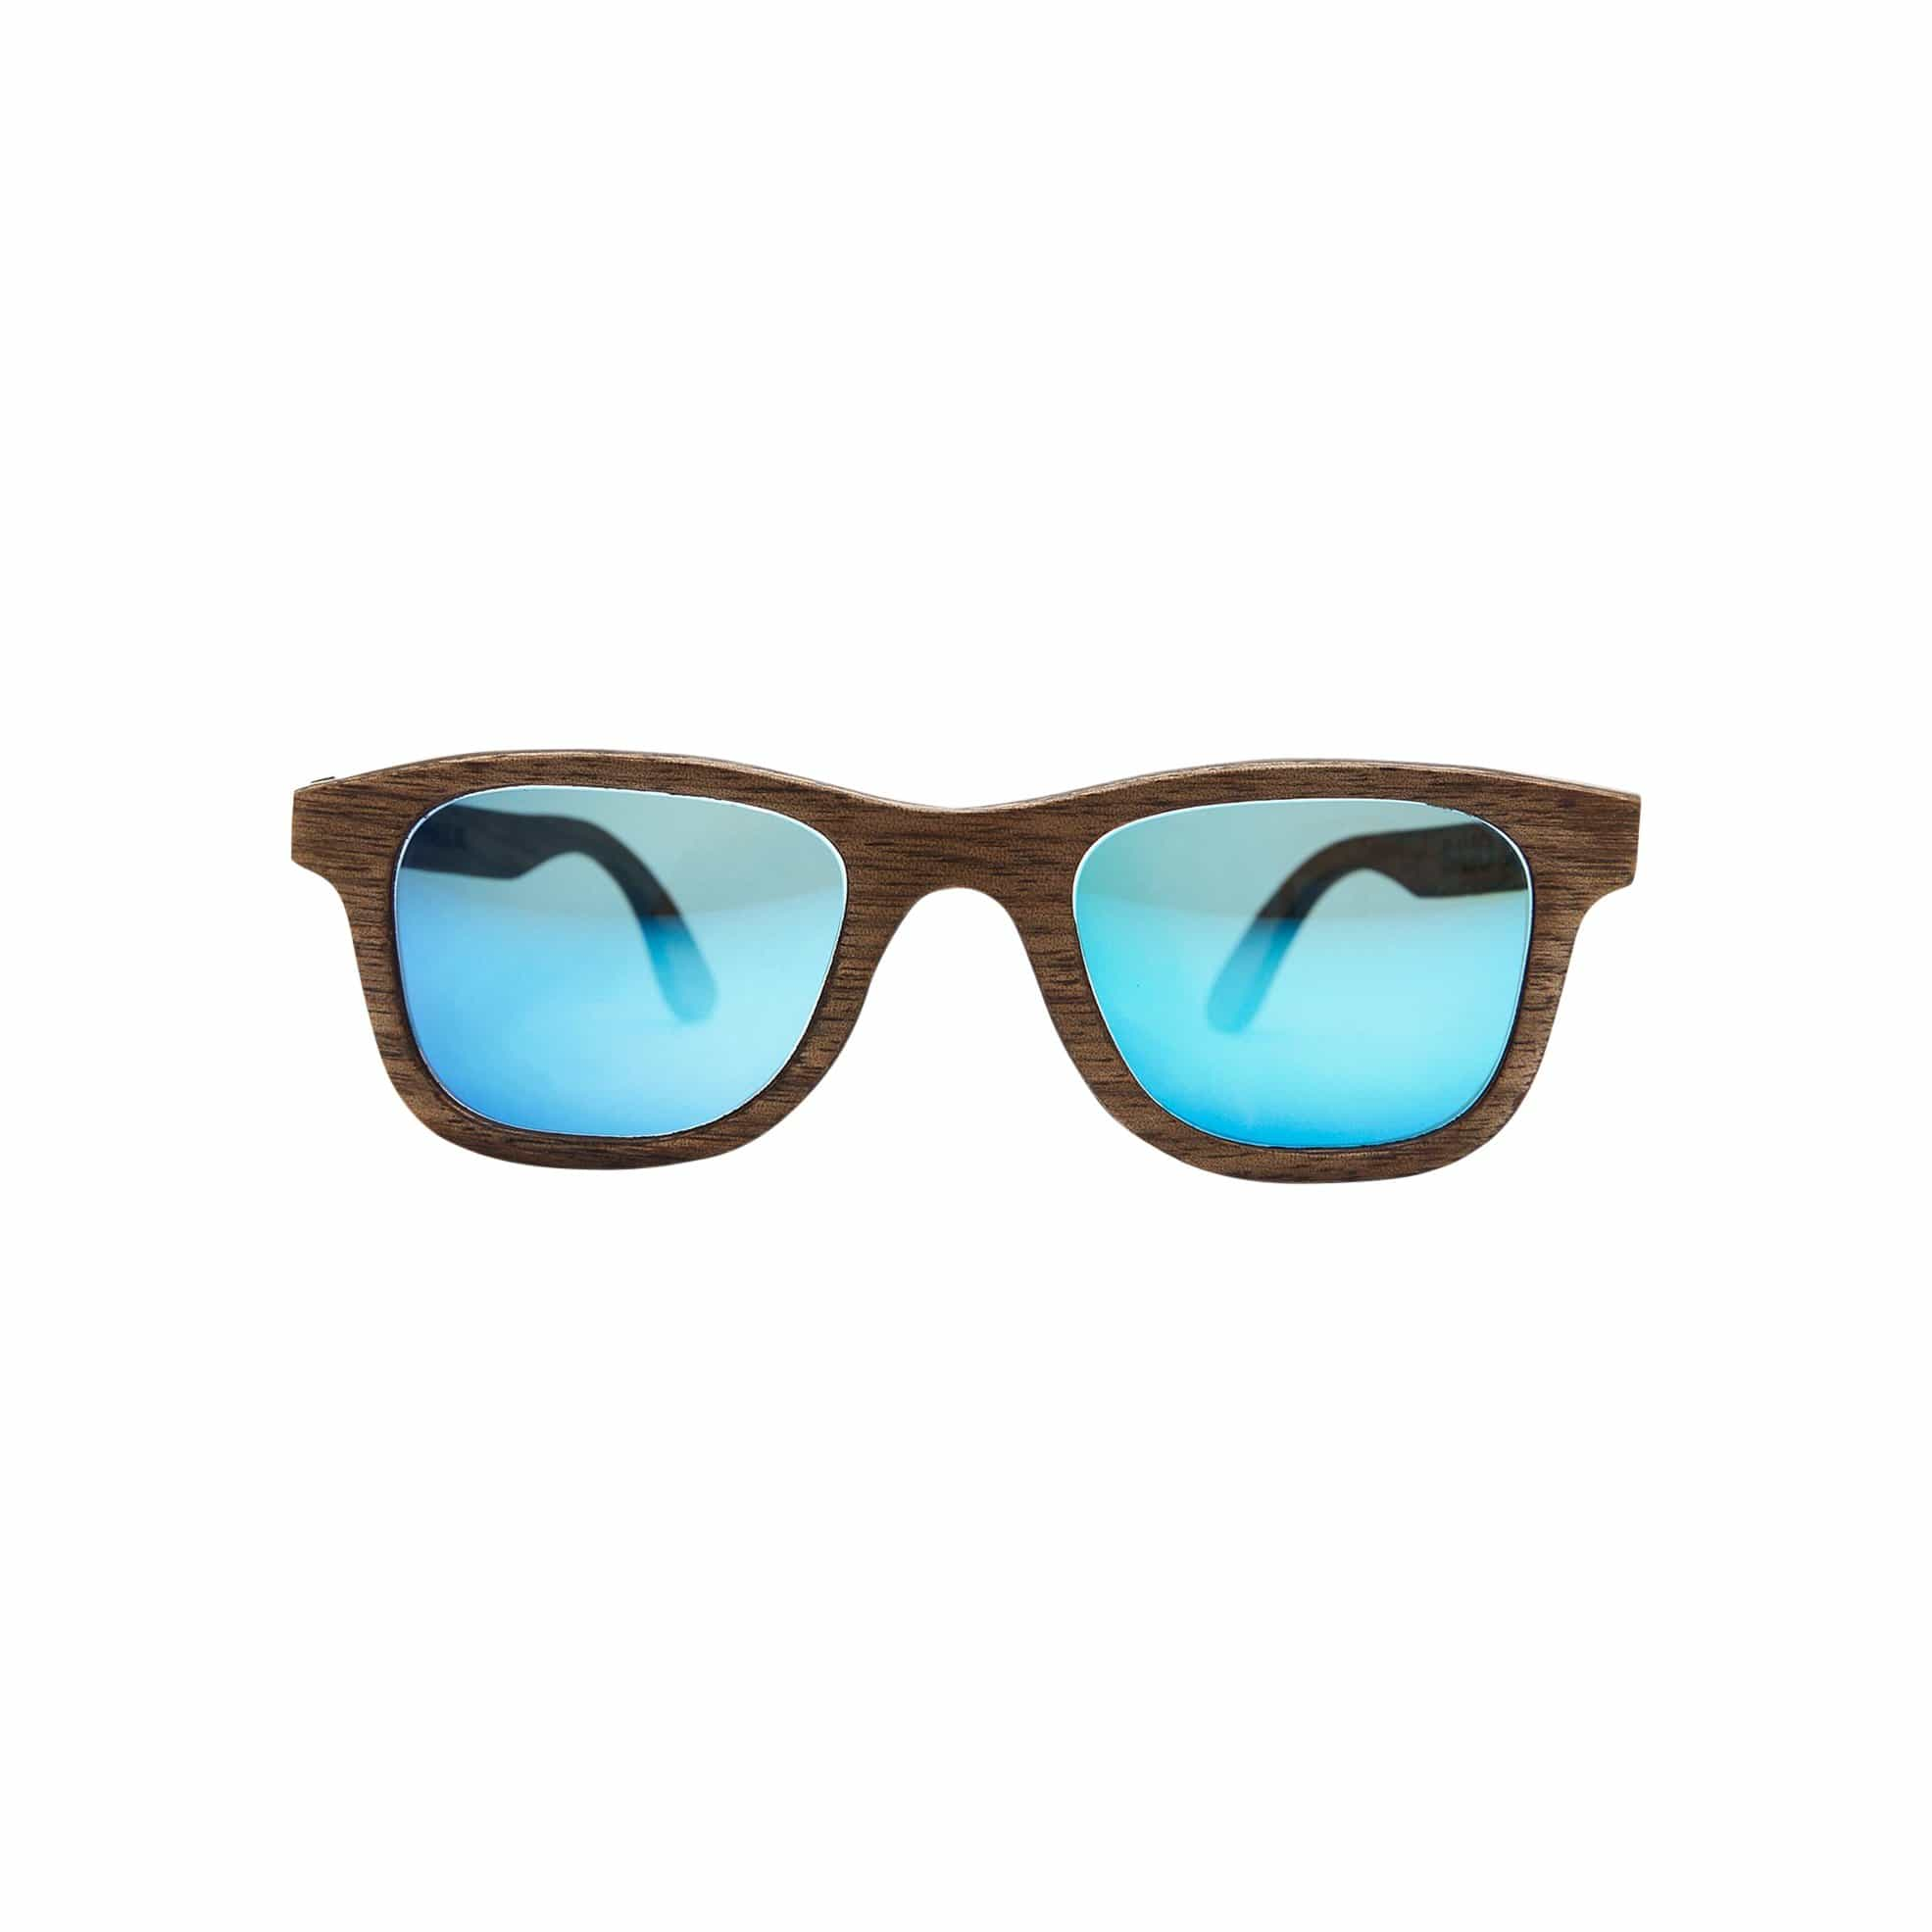 Ballo Sunglasses + Eyewear BarnesXL with Walnut + Revo Mirror Lenses